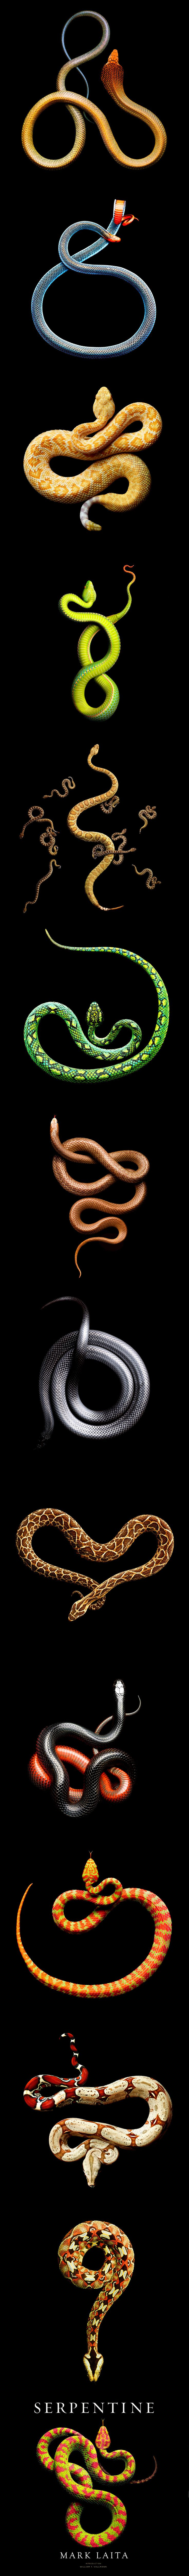 photos by Mark Laita, for the book 'Serpentine,' a collection of gorgeously lit snakes on a black background.